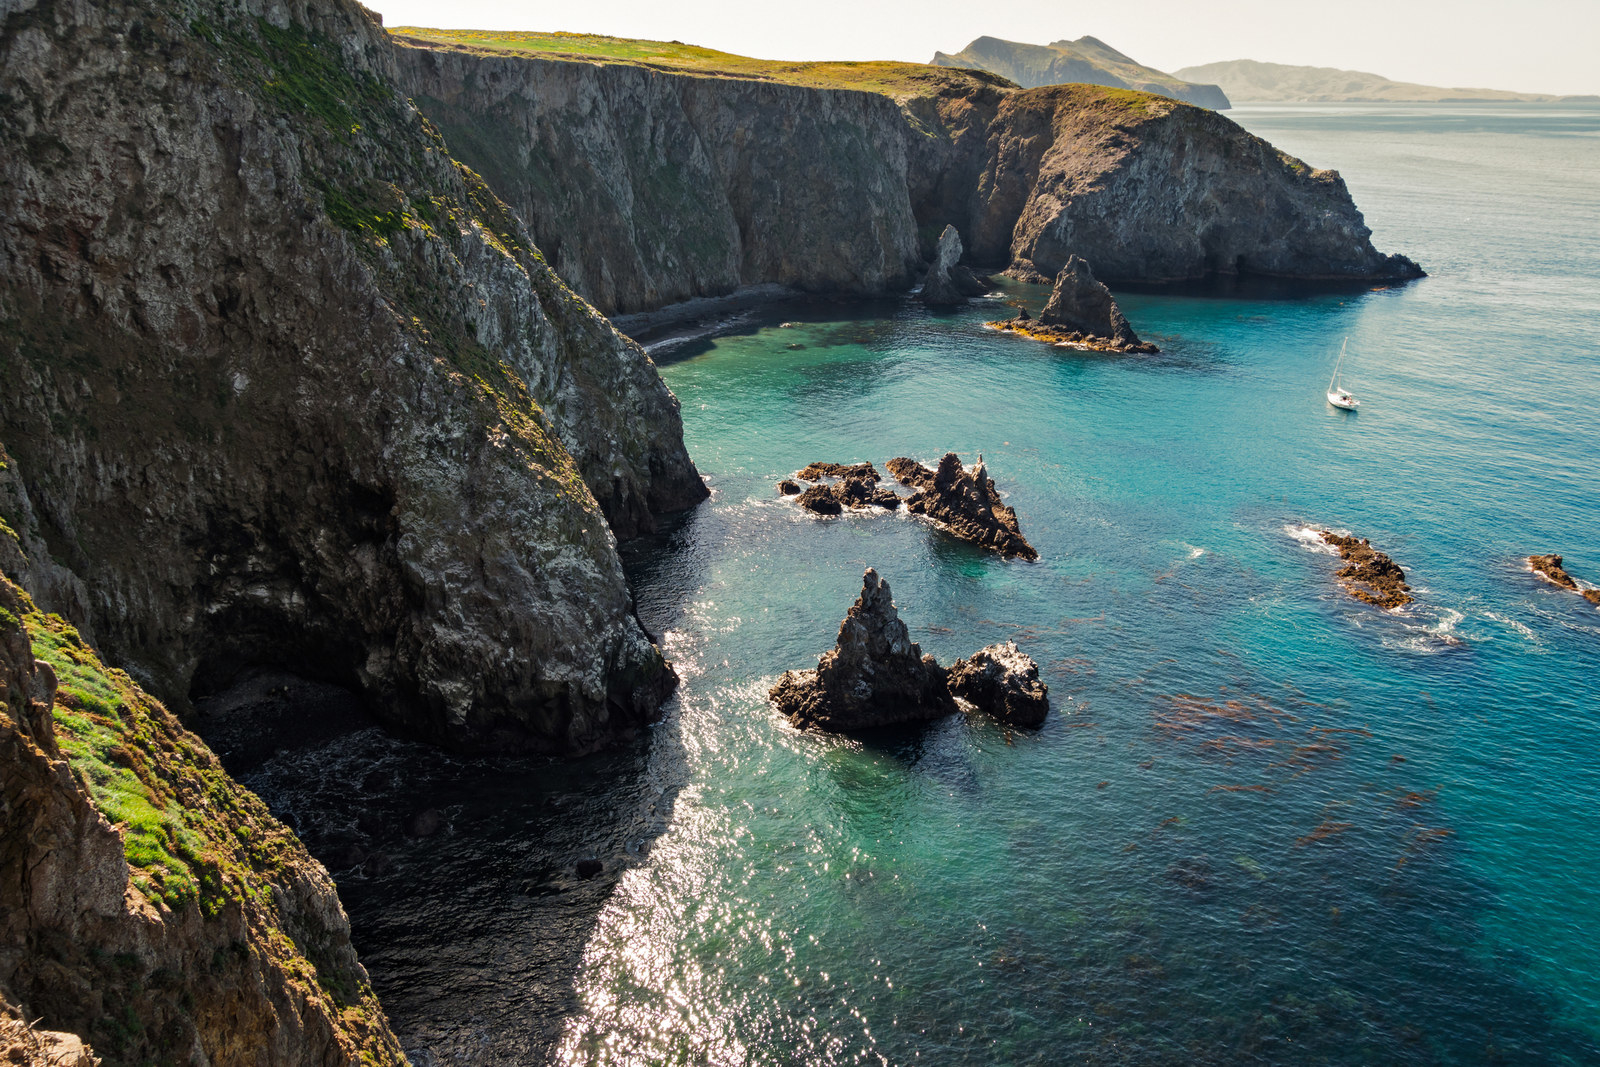 USA: Channel Islands National Park -  California is home to more national parks than any other U.S. state, including this one, which contains five of the eight channel islands just off the Pacific coast.